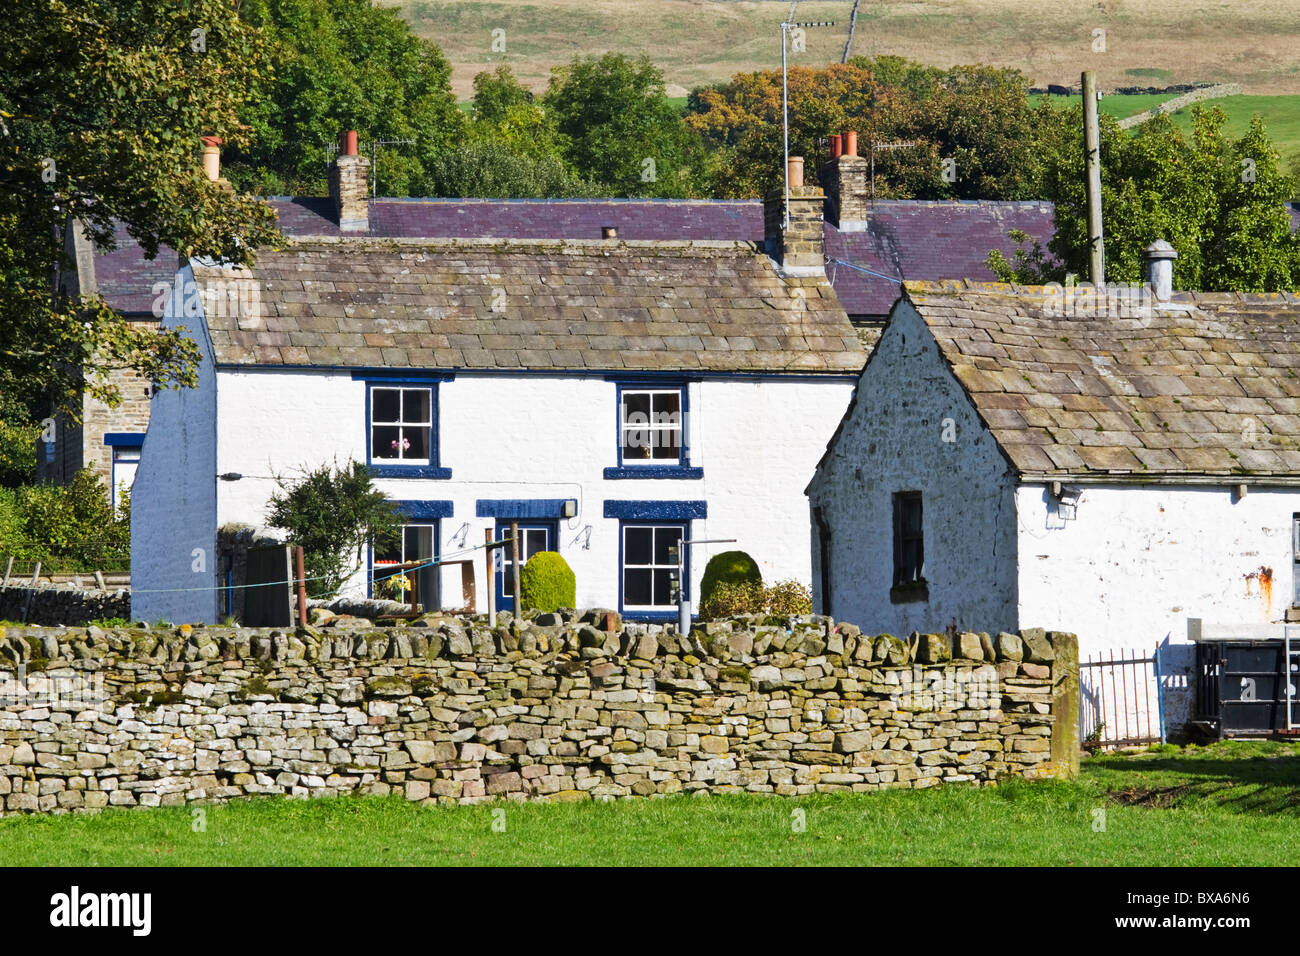 Farm buildings in the village of Bowlees in the Tees Valley, Teesdale, County Durham, England - Stock Image